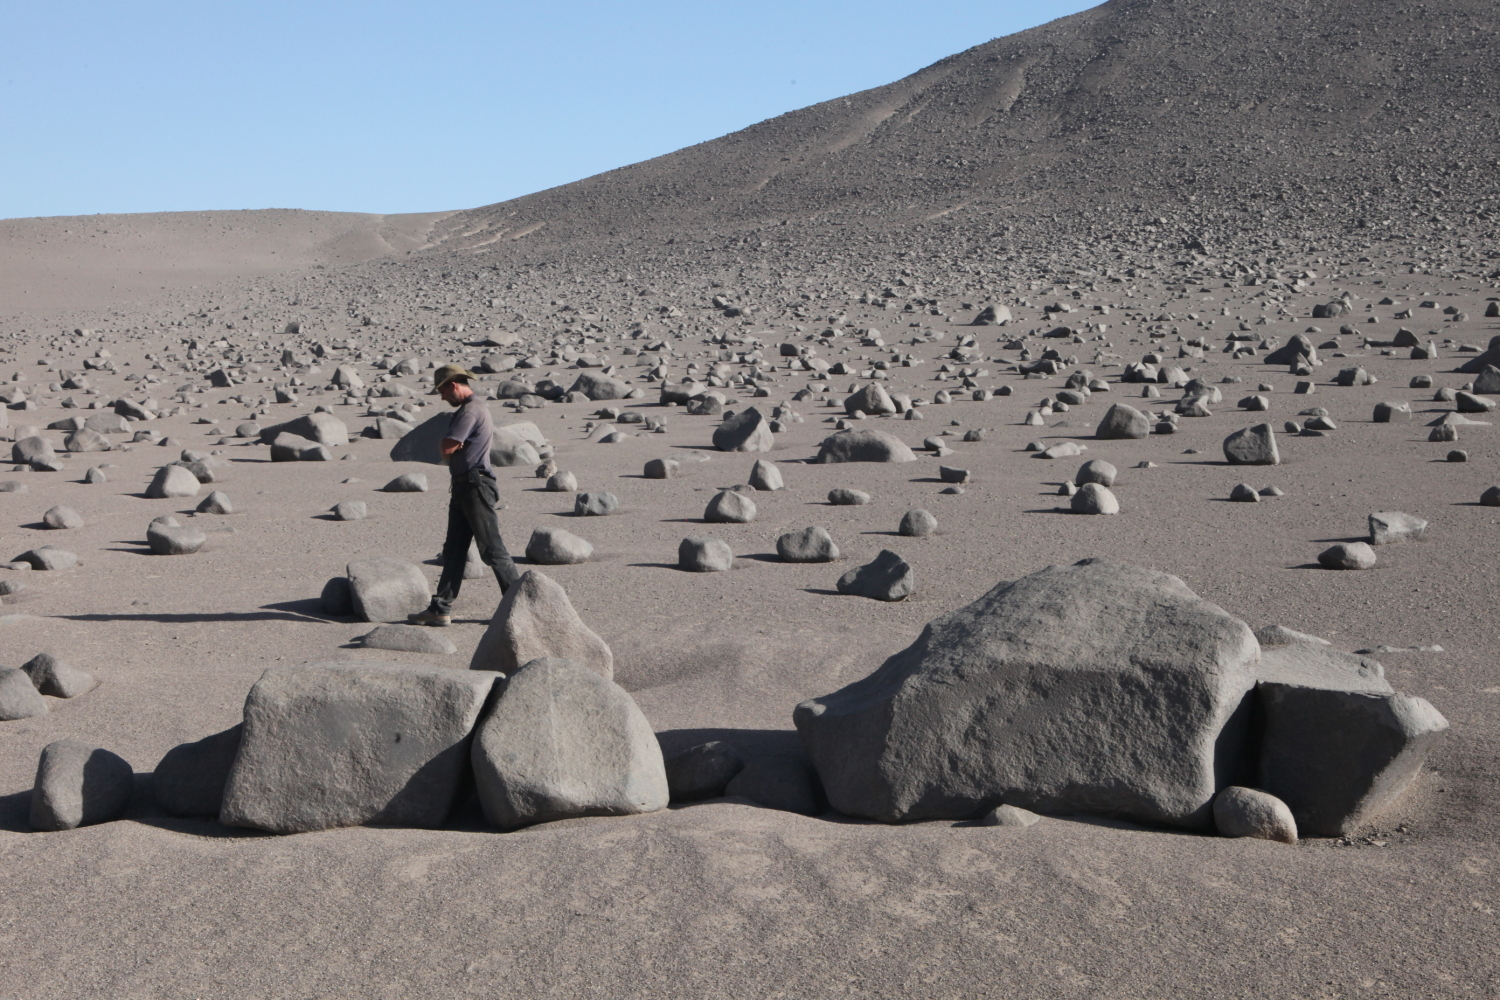 Earthquakes As Weathering Agents The Rubbing Boulders Of The Atacama The Trembling Earth Agu Blogosphere